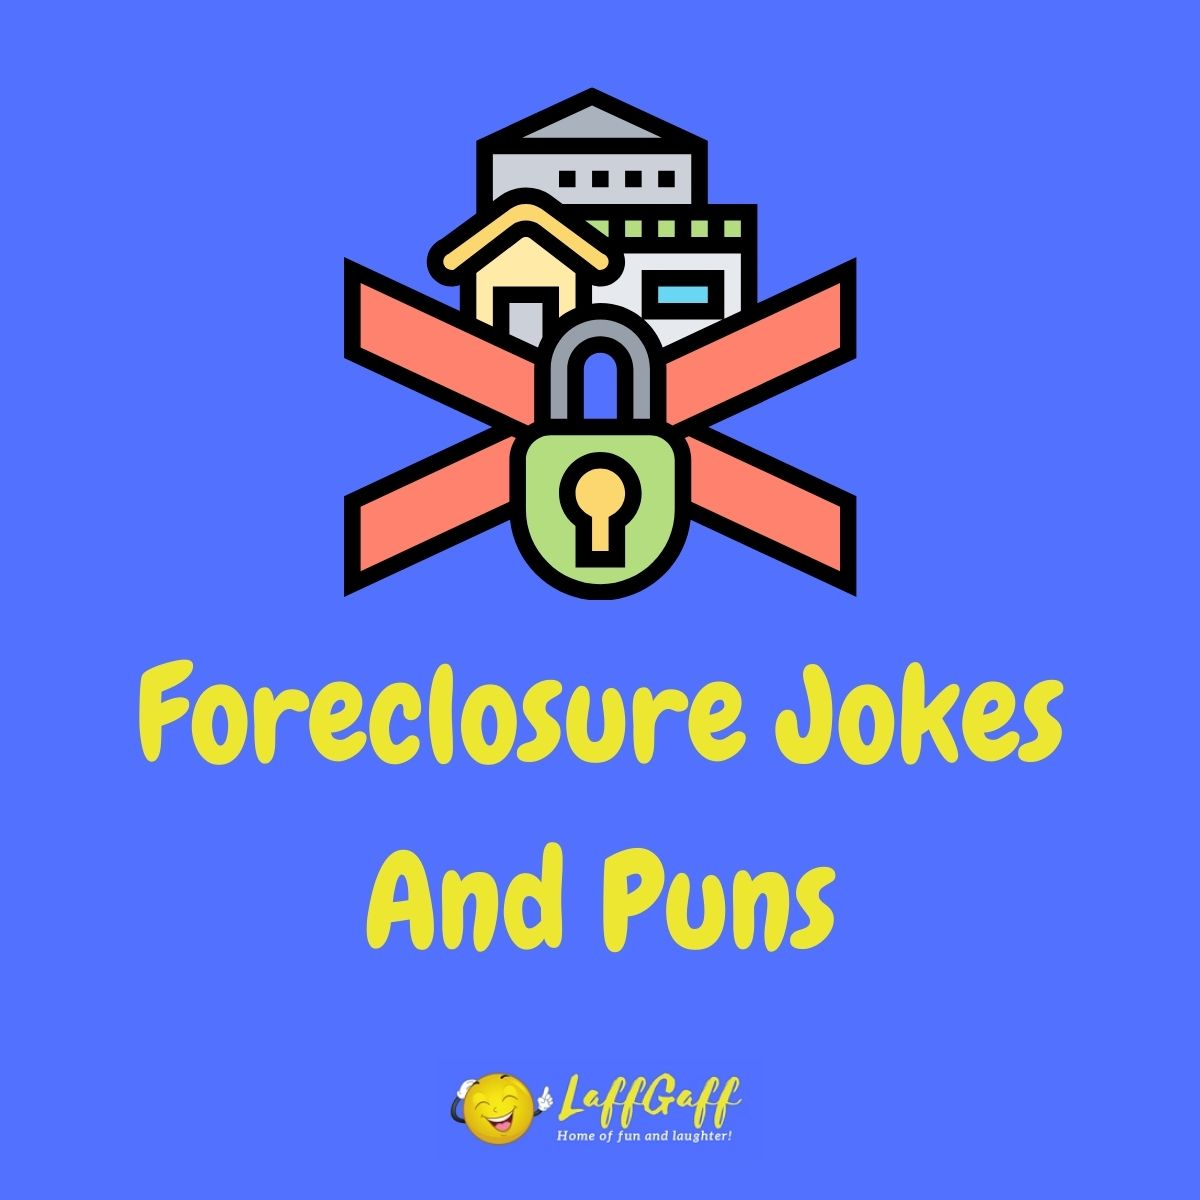 Featured image for a page of funny foreclosure jokes and puns.